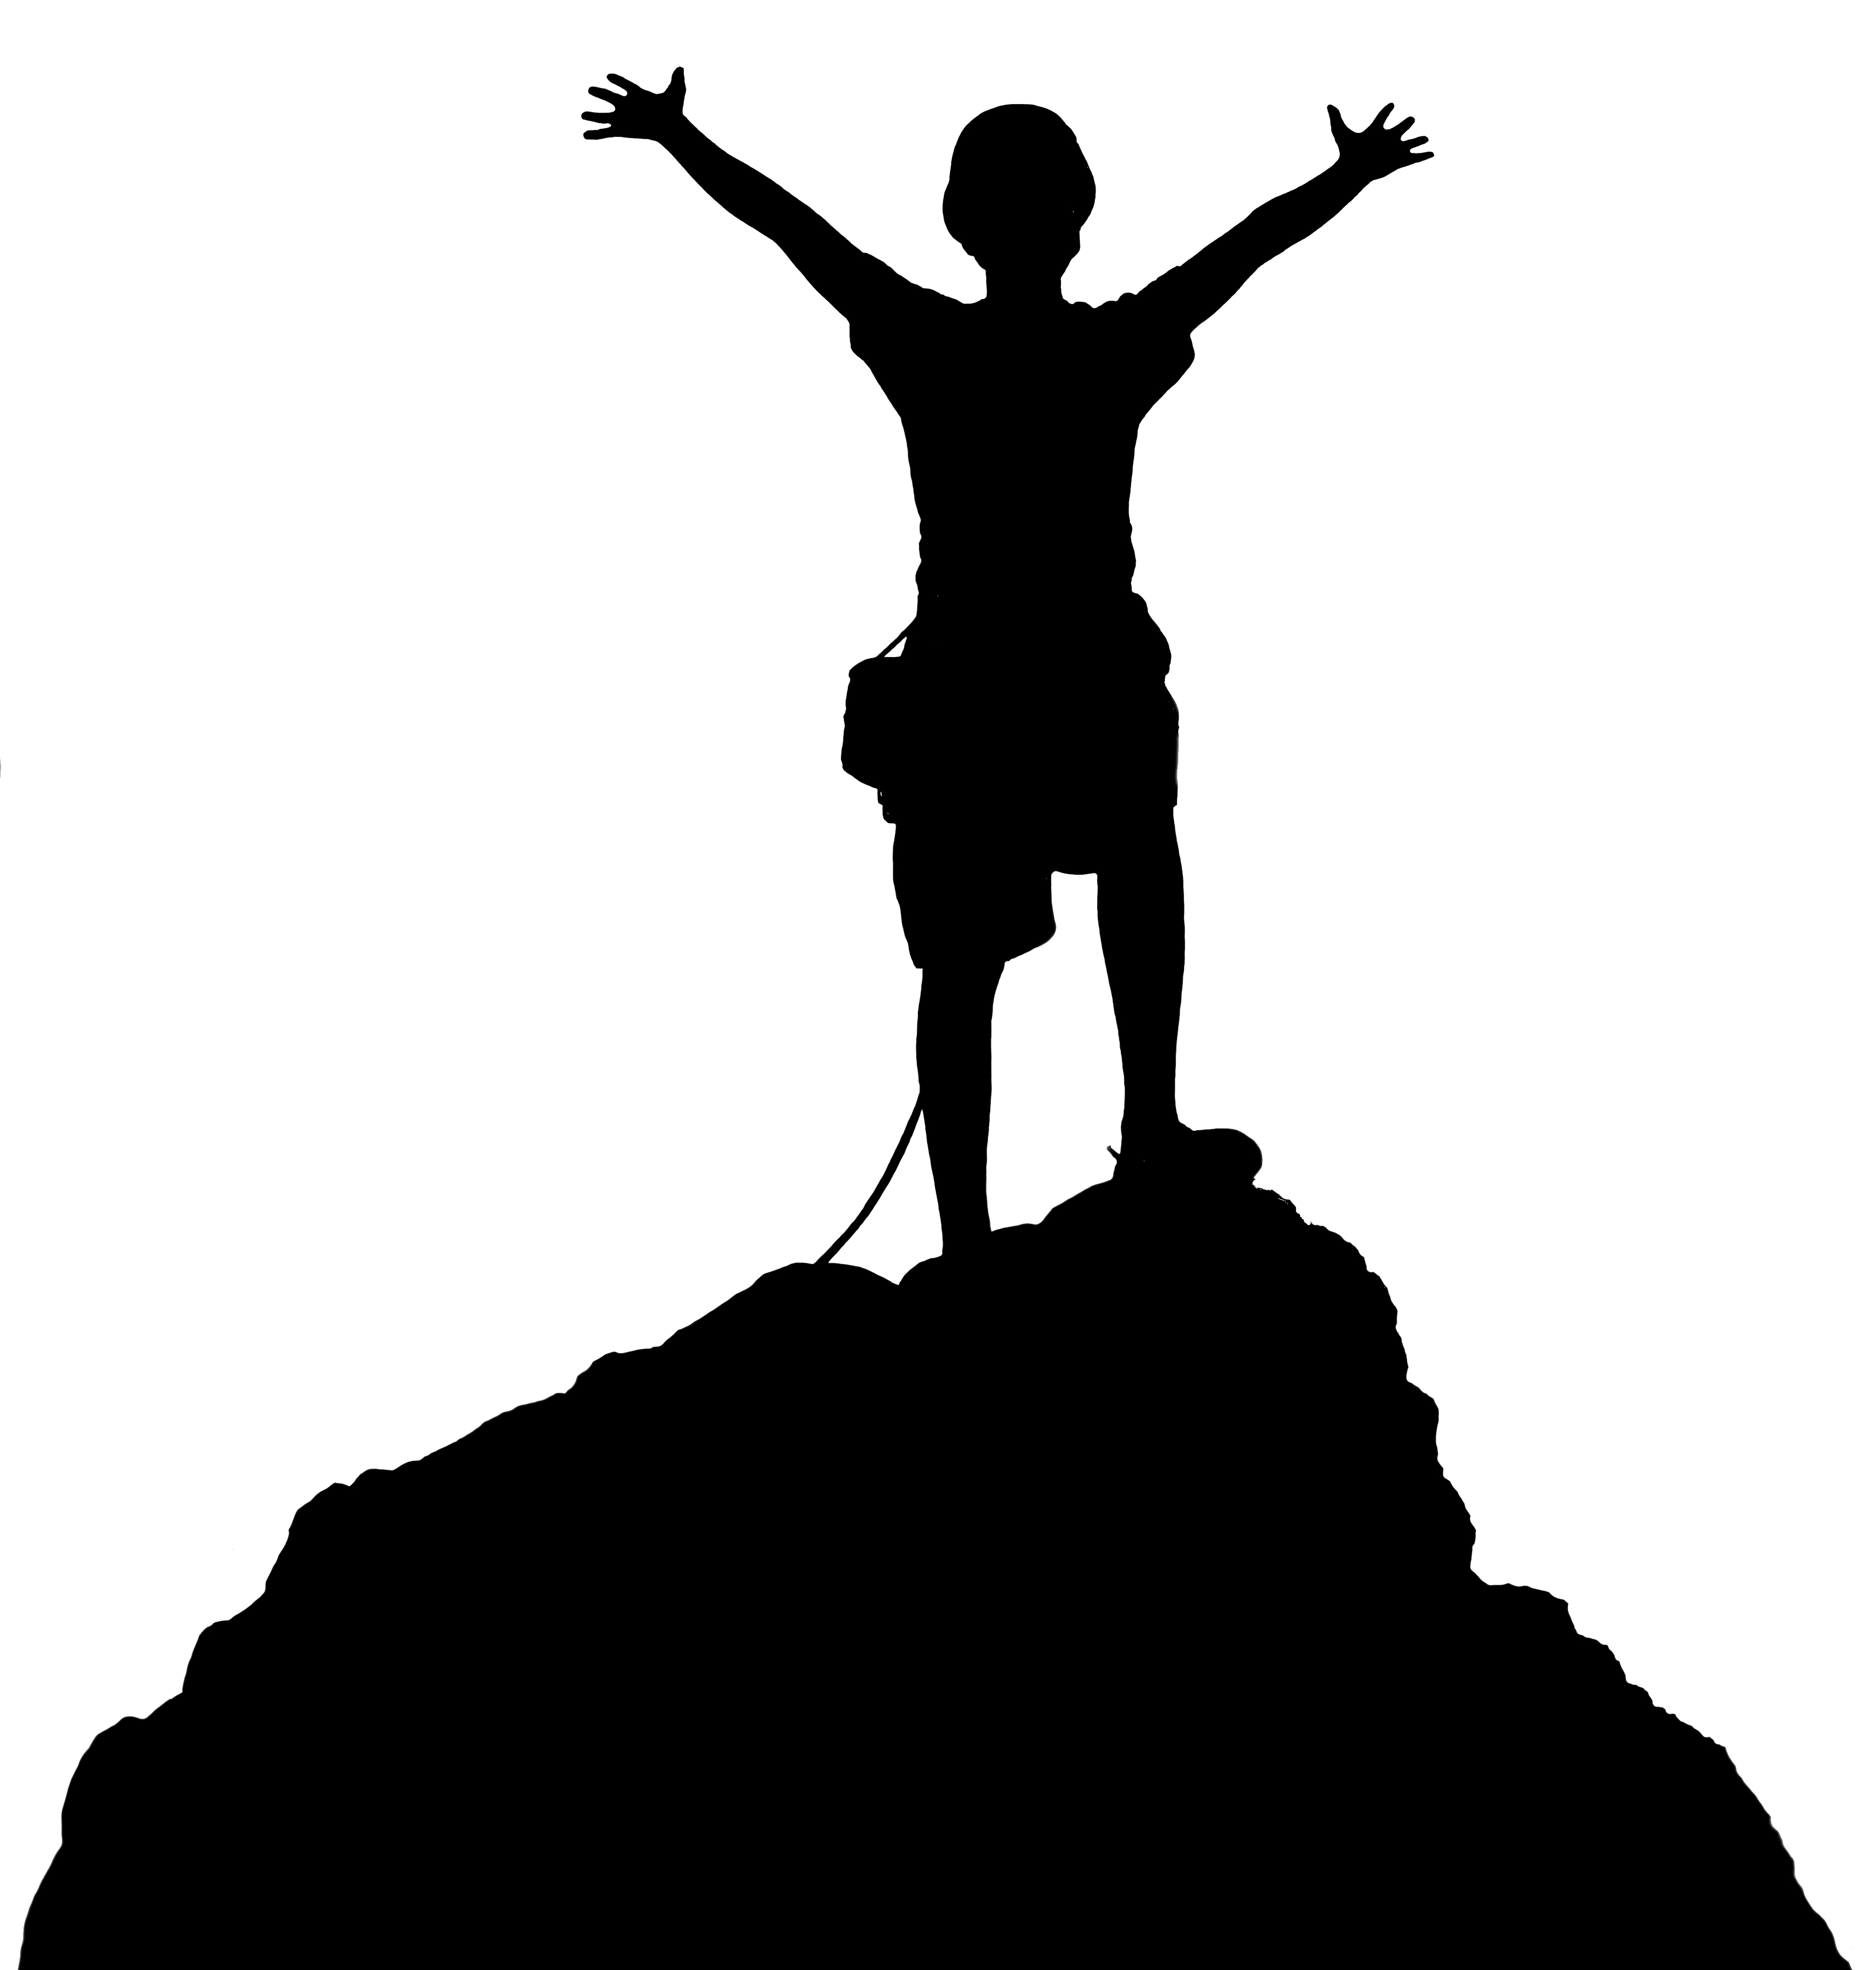 price is right mountain climber clipart-price is right mountain climber clipart-5